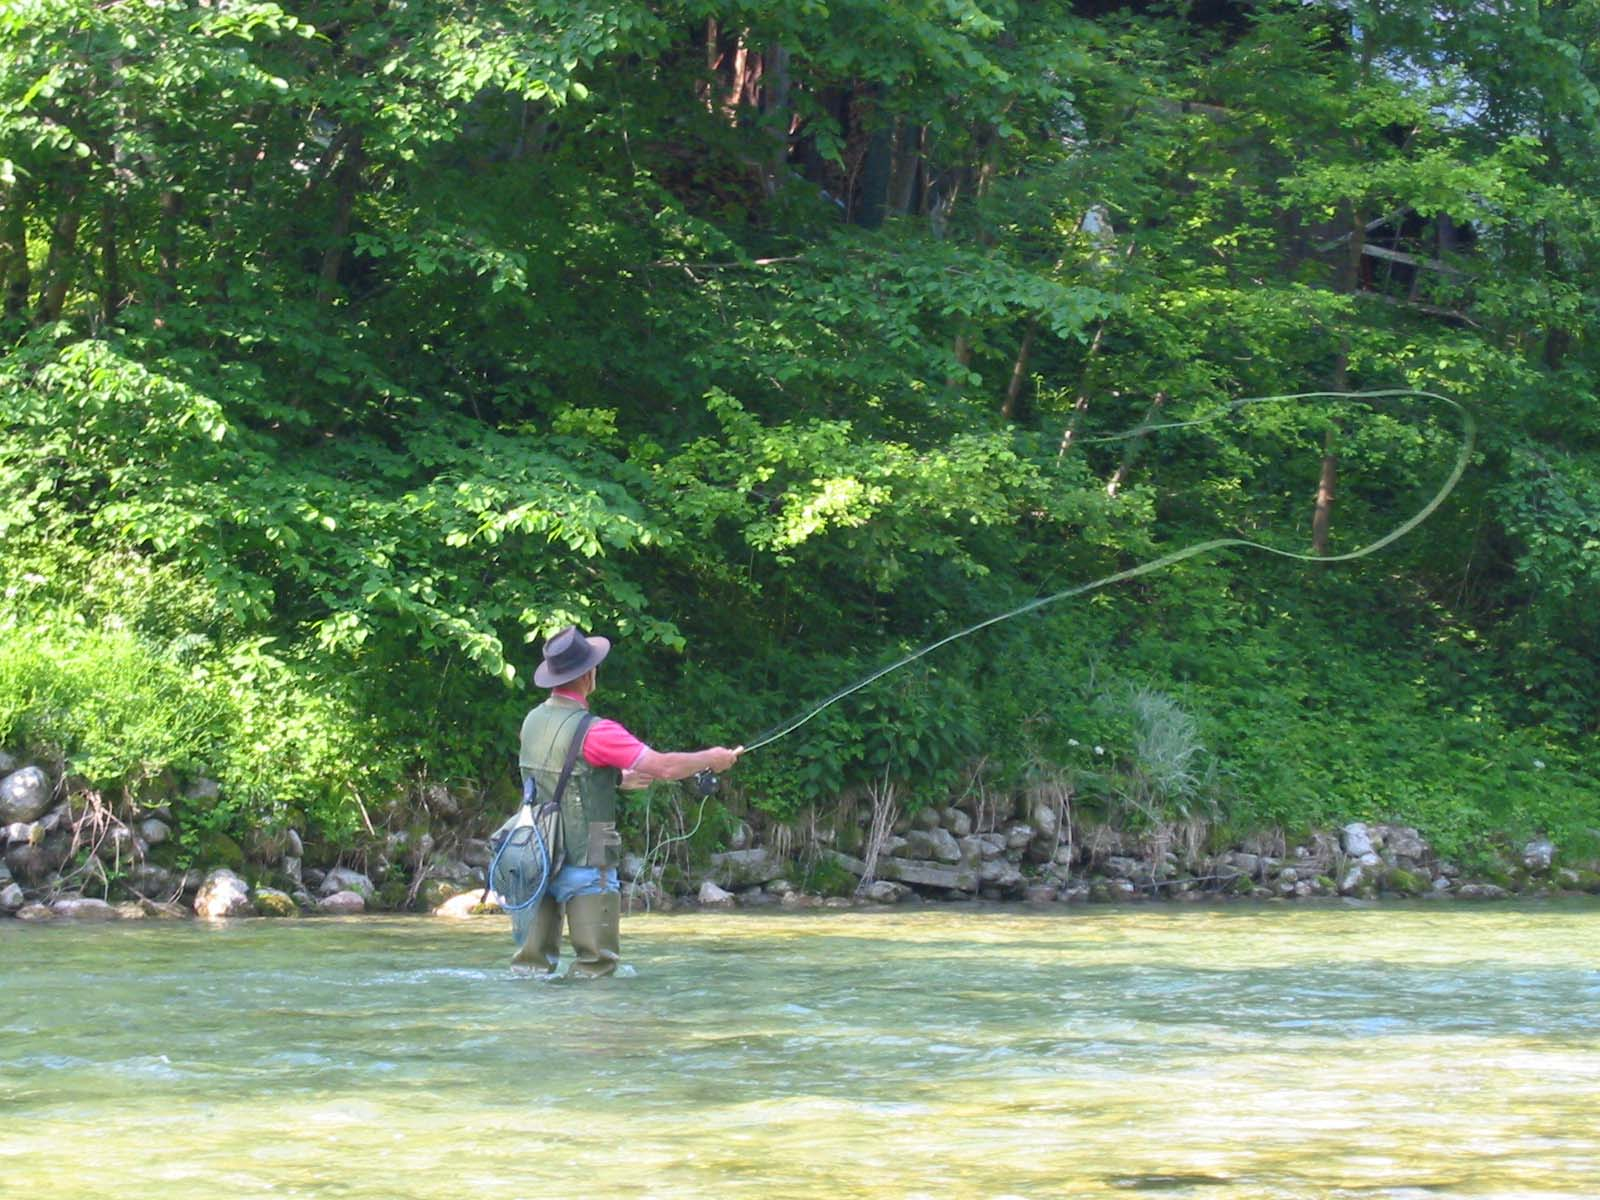 What Is The Best Time Of Year For Fly Fishing In Jackson